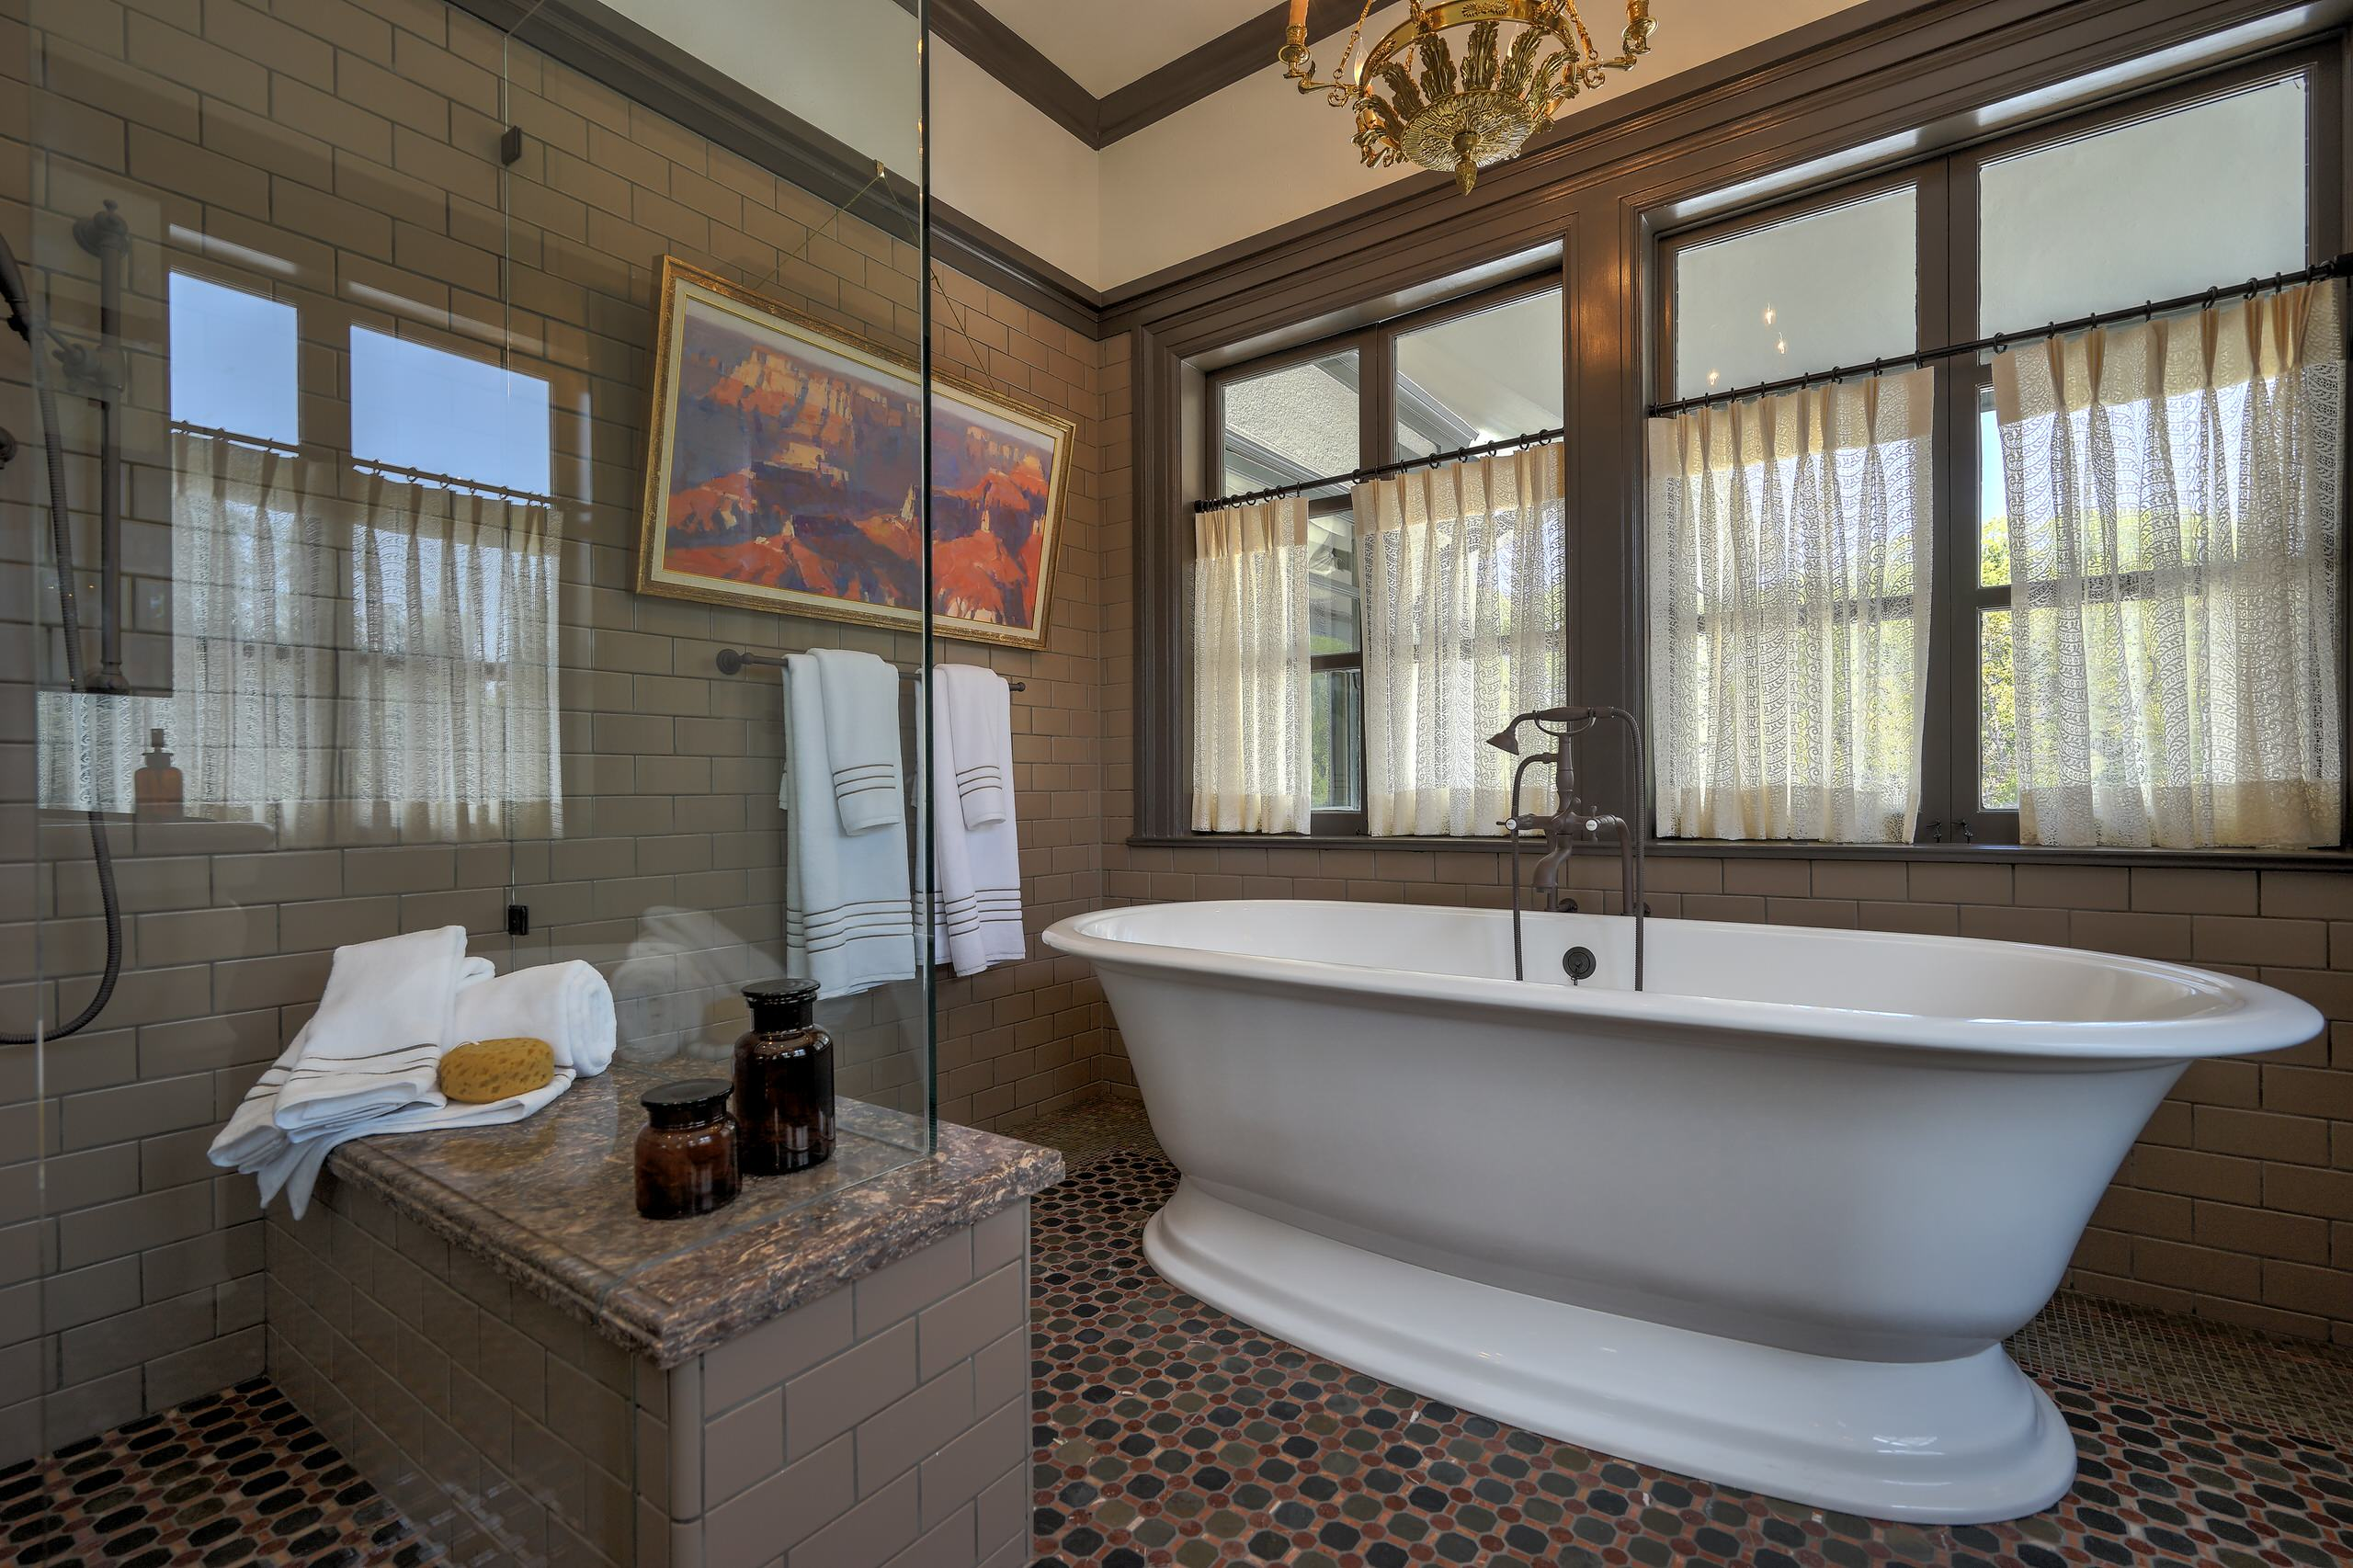 1910 Bathroom Ideas Photos Houzz